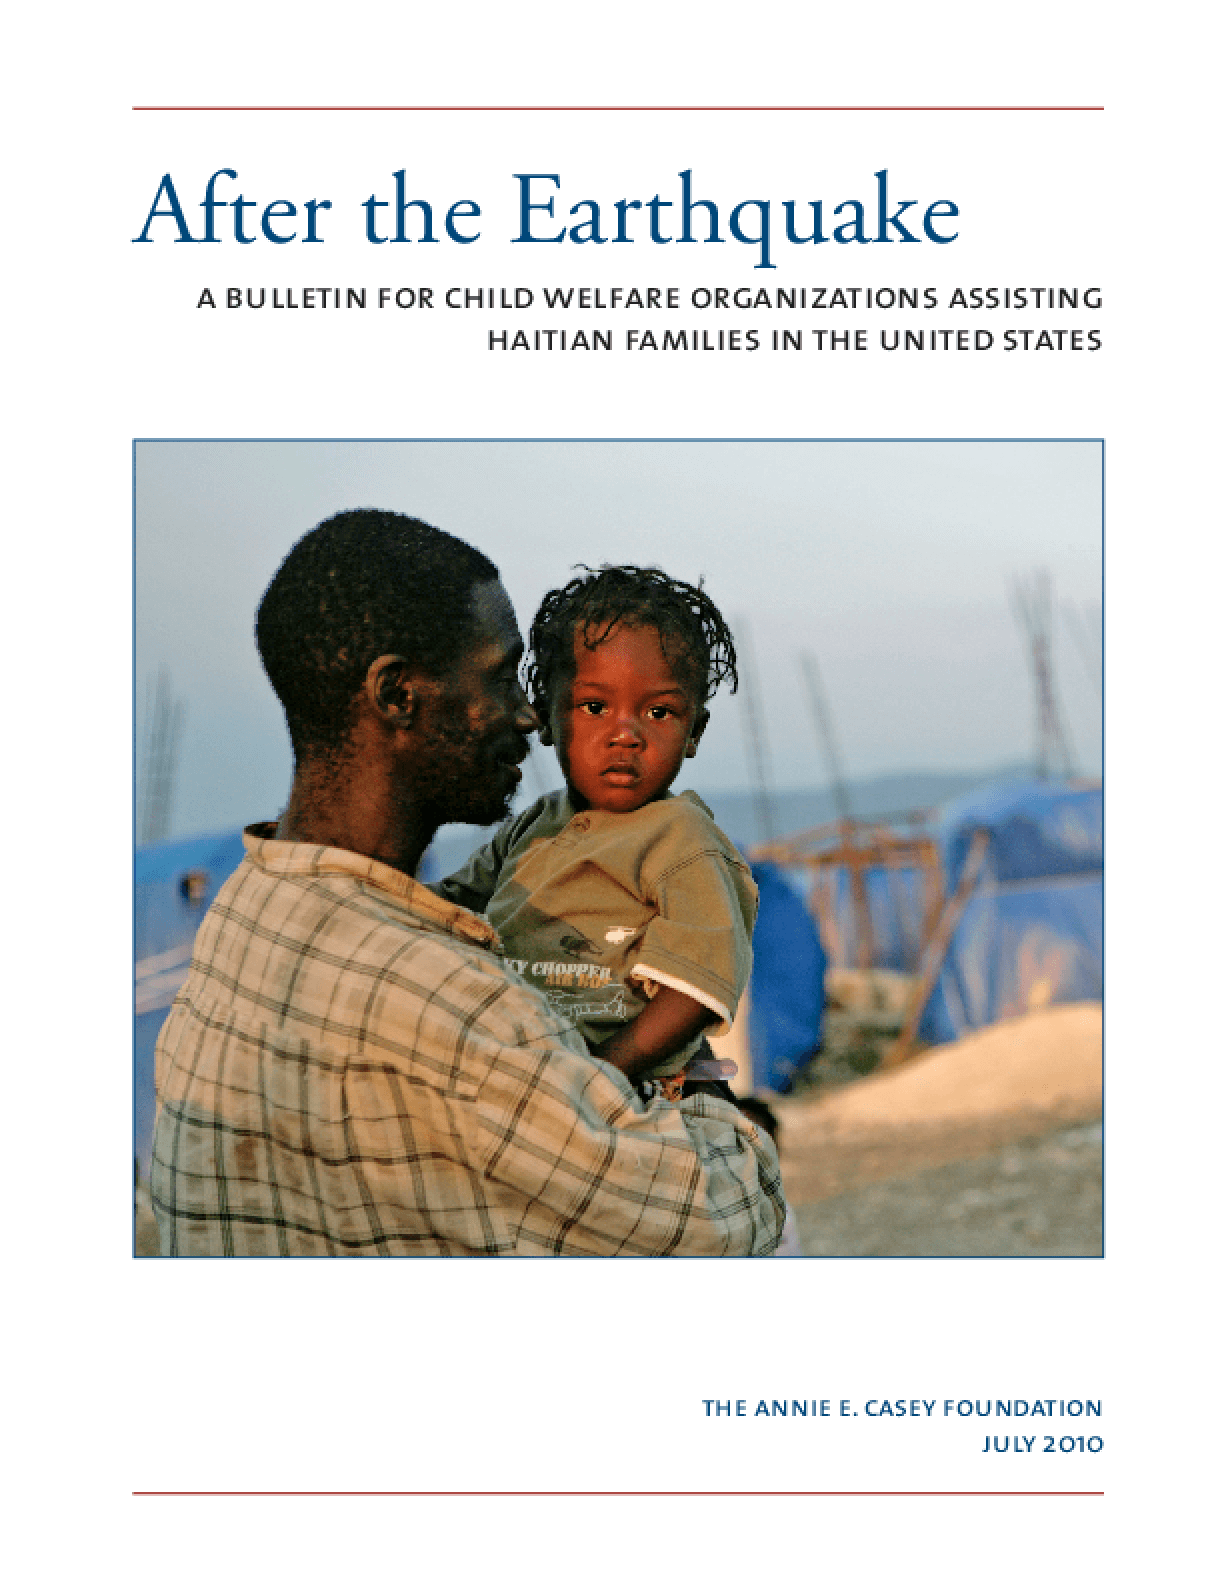 After the Earthquake: A Bulletin for Child Welfare Organizations Assisting Haitian Families in the United States